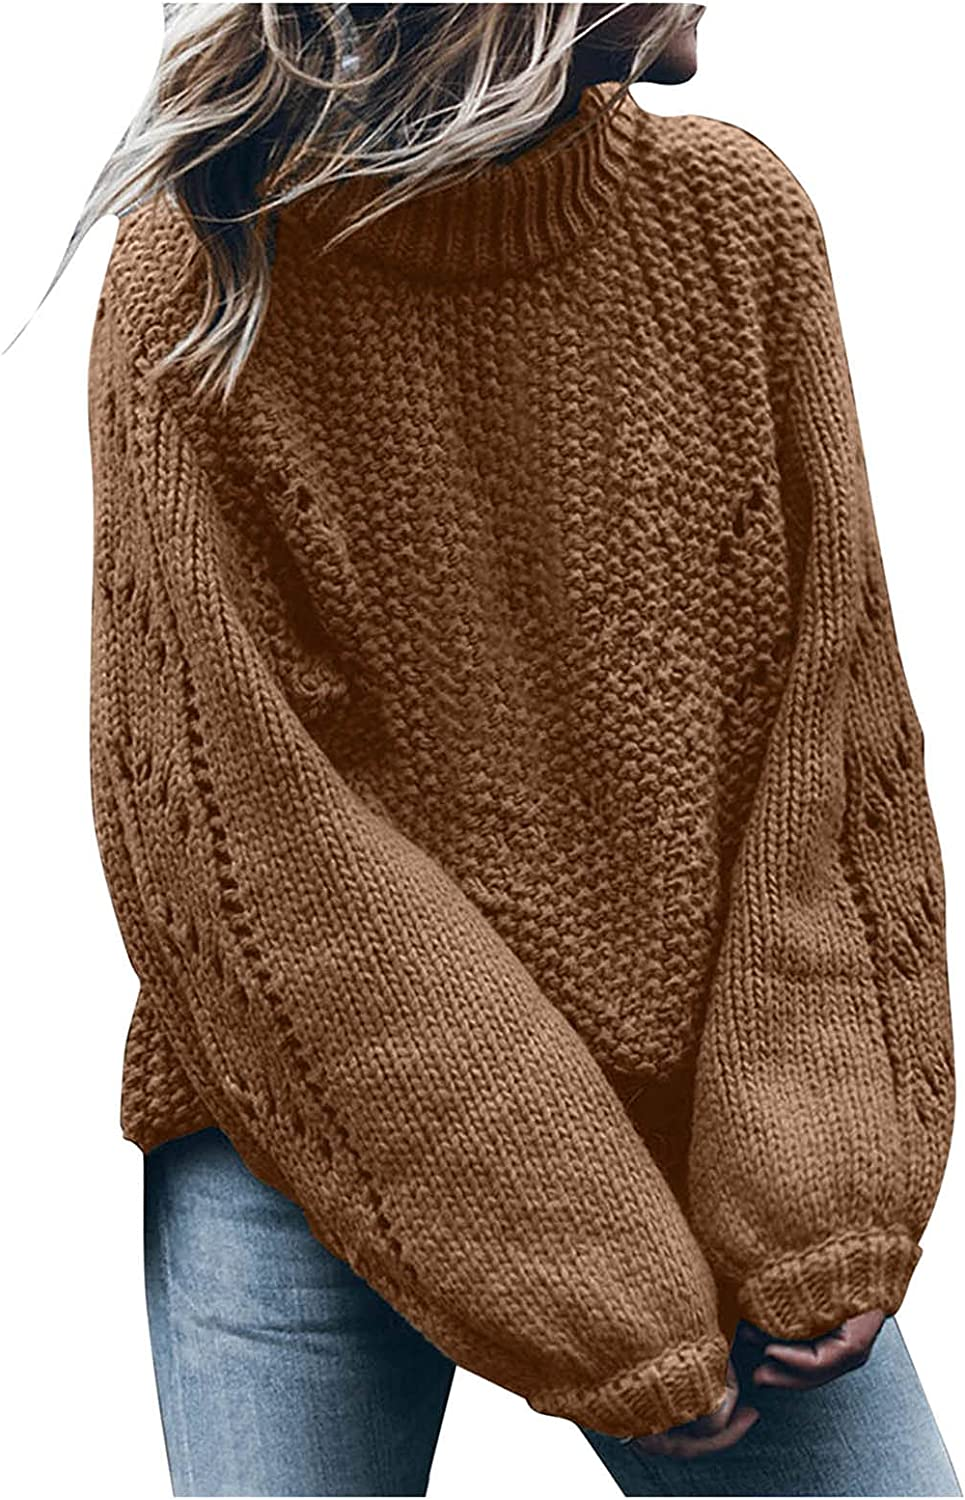 High Neck Sweaters for Women Turtleneck Max 86% OFF Knit Lightweight Limited time cheap sale Winter